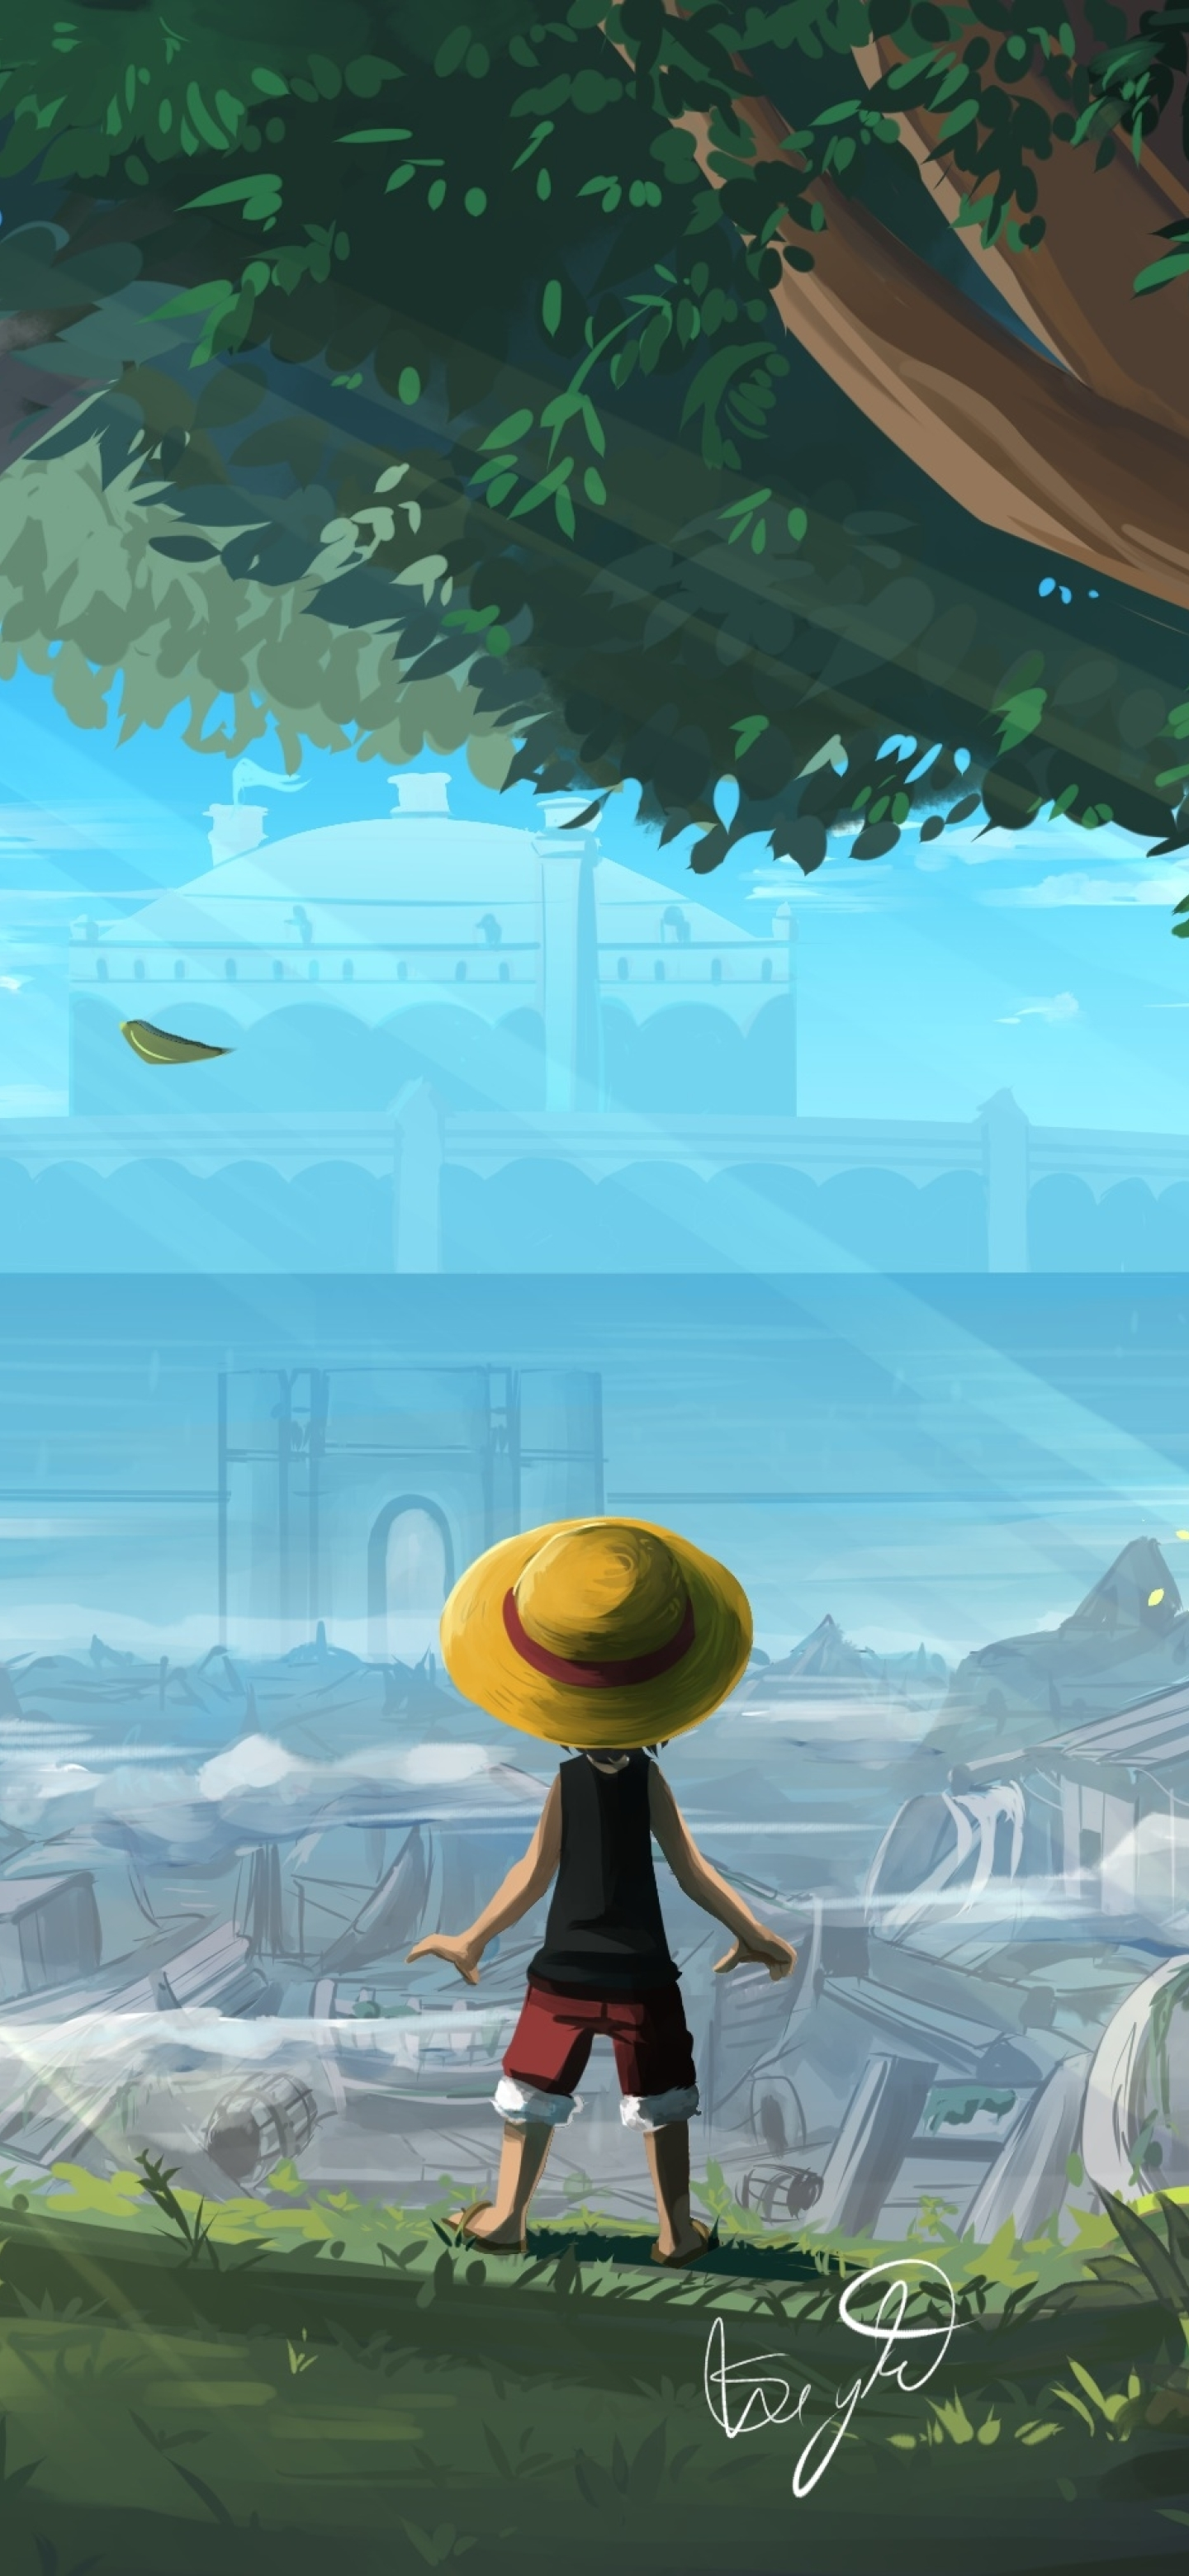 1440x3120 Monkey D Luffy One Piece Art 1440x3120 Resolution Wallpaper Hd Artist 4k Wallpapers Images Photos And Background